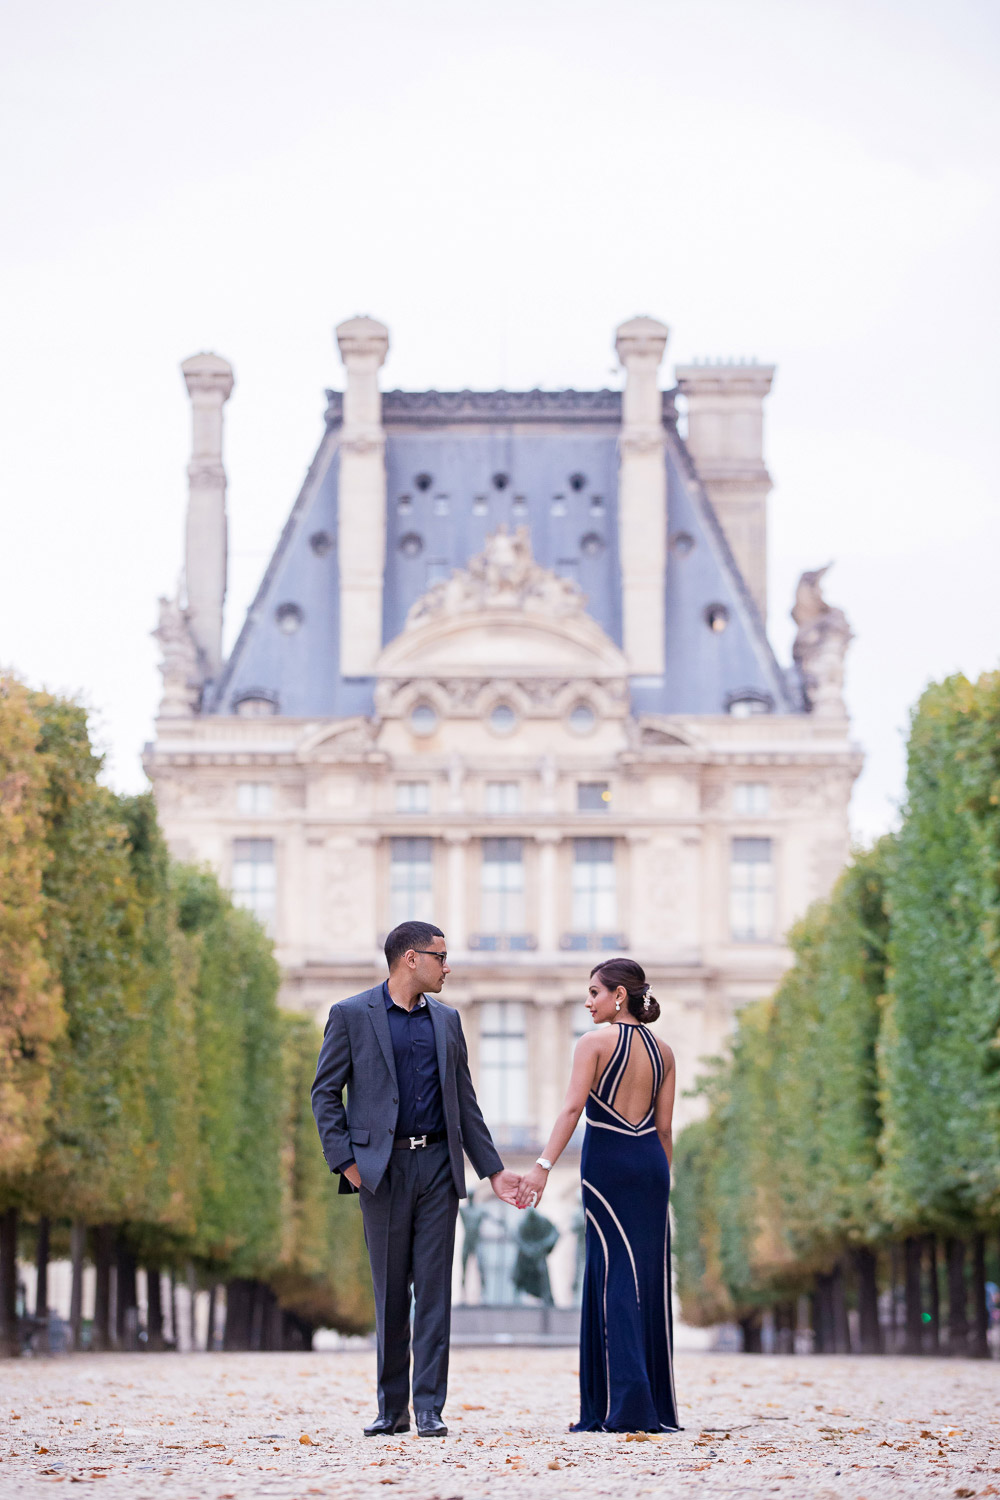 Photo by Kiss Me in Paris. www.theweddingnotebook.com